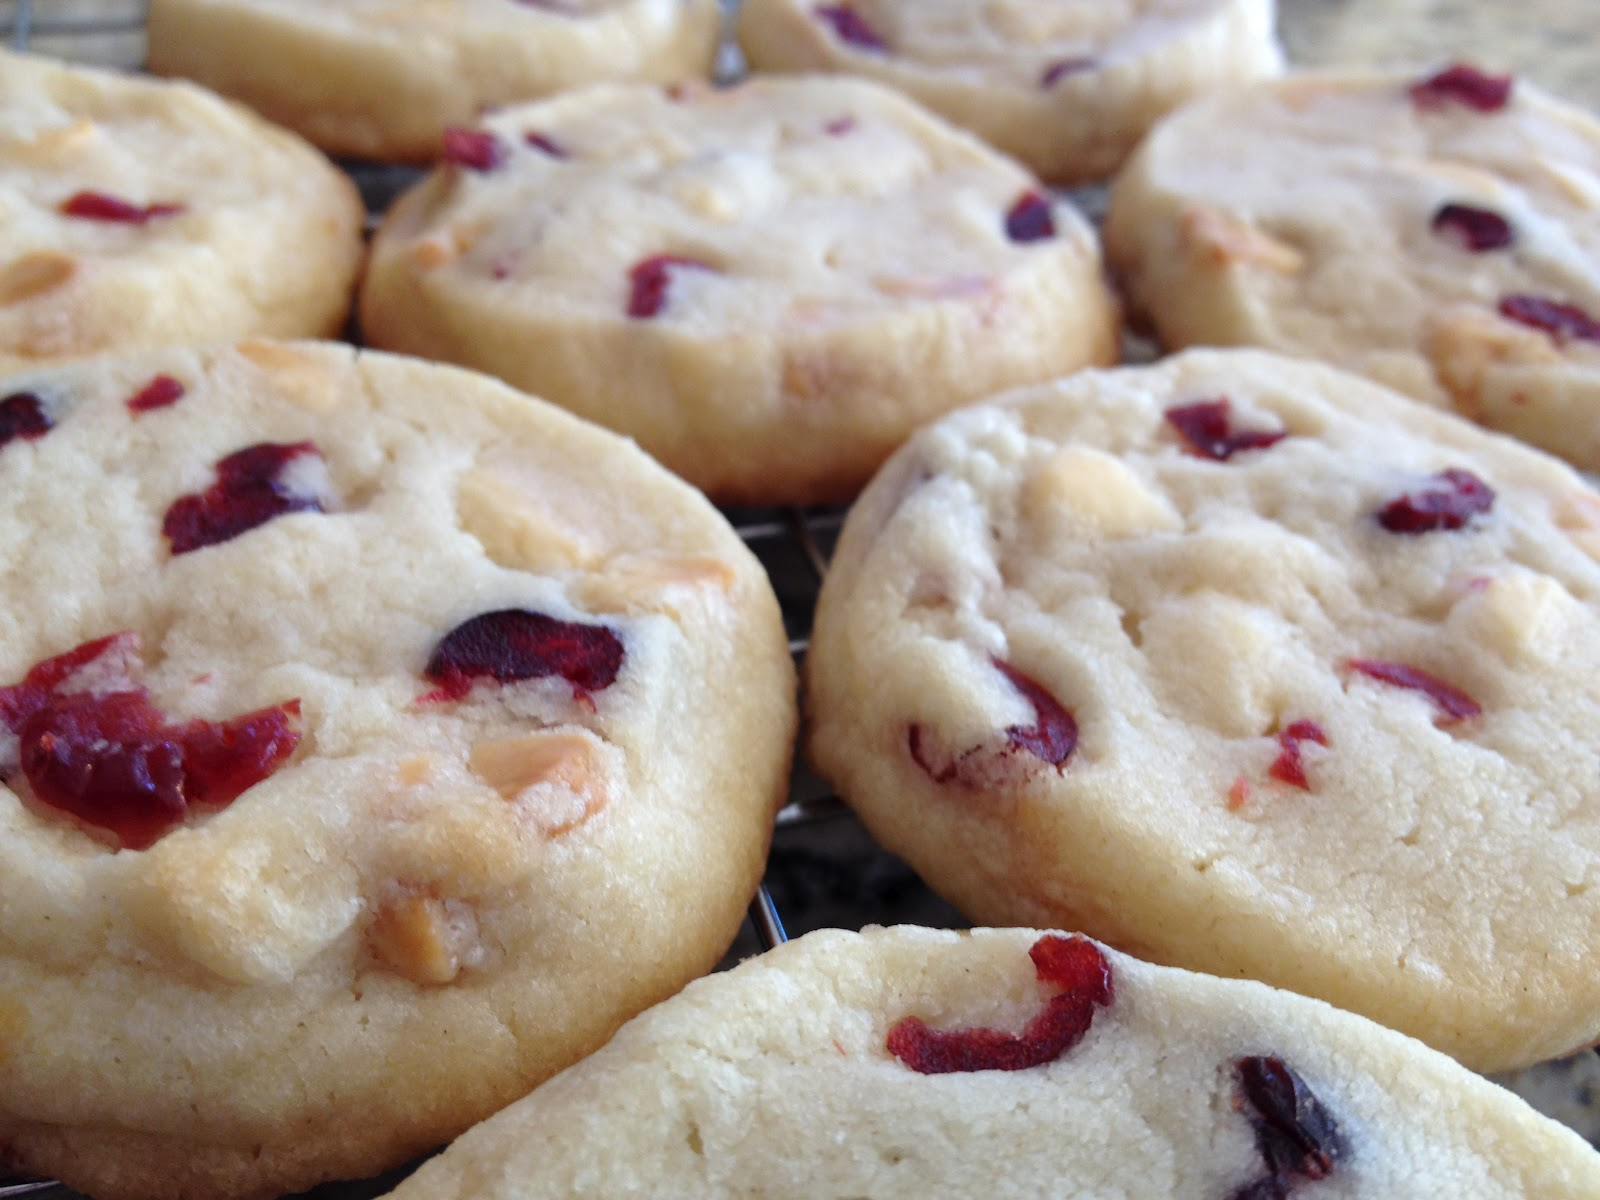 The Nerdy Chef: White Chocolate Cranberry Cookies